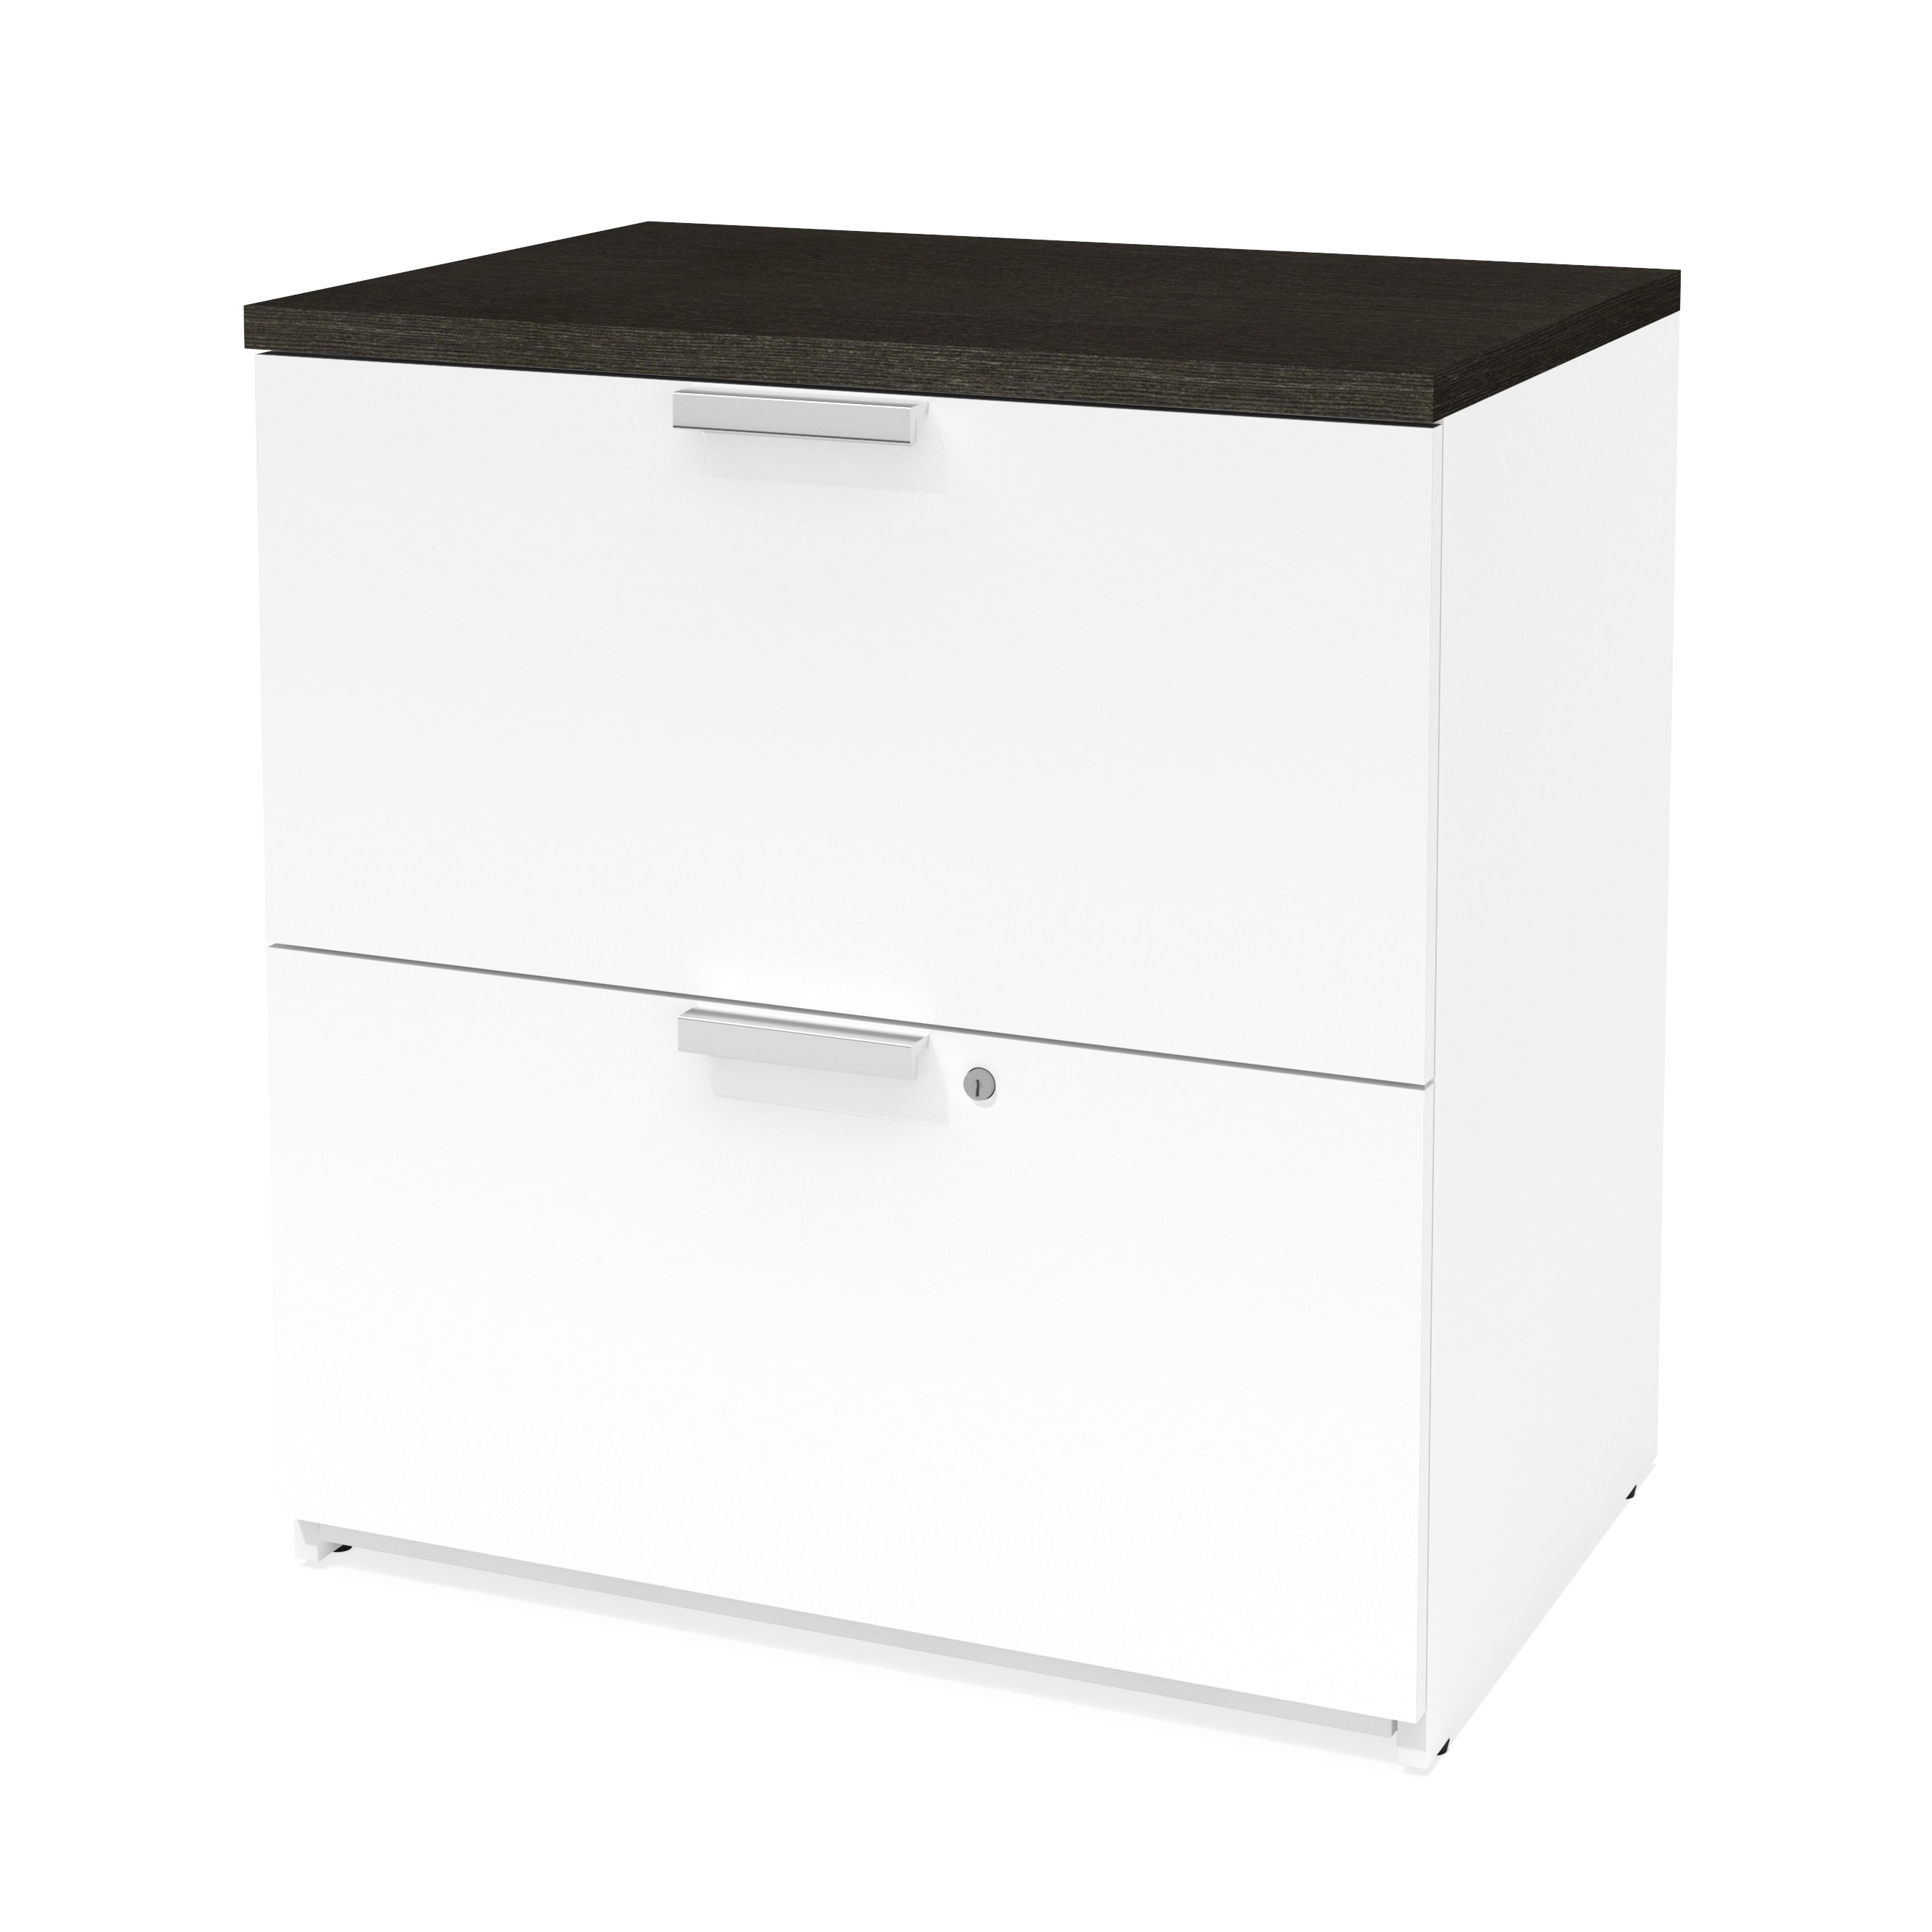 Bestar Pro-Concept Plus 45-Drawer Lateral File